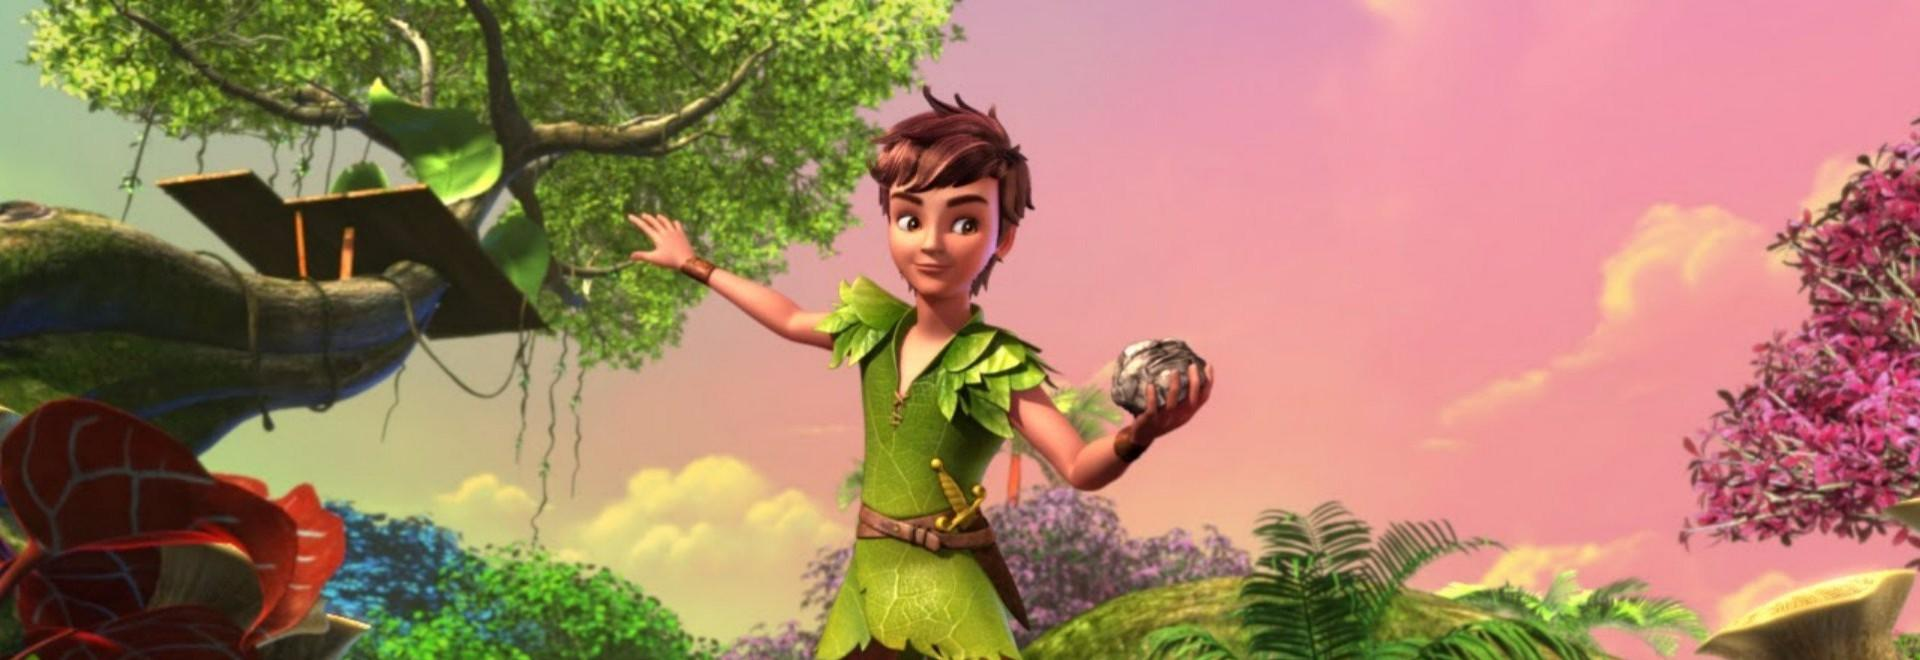 Buon compleanno, Peter Pan!